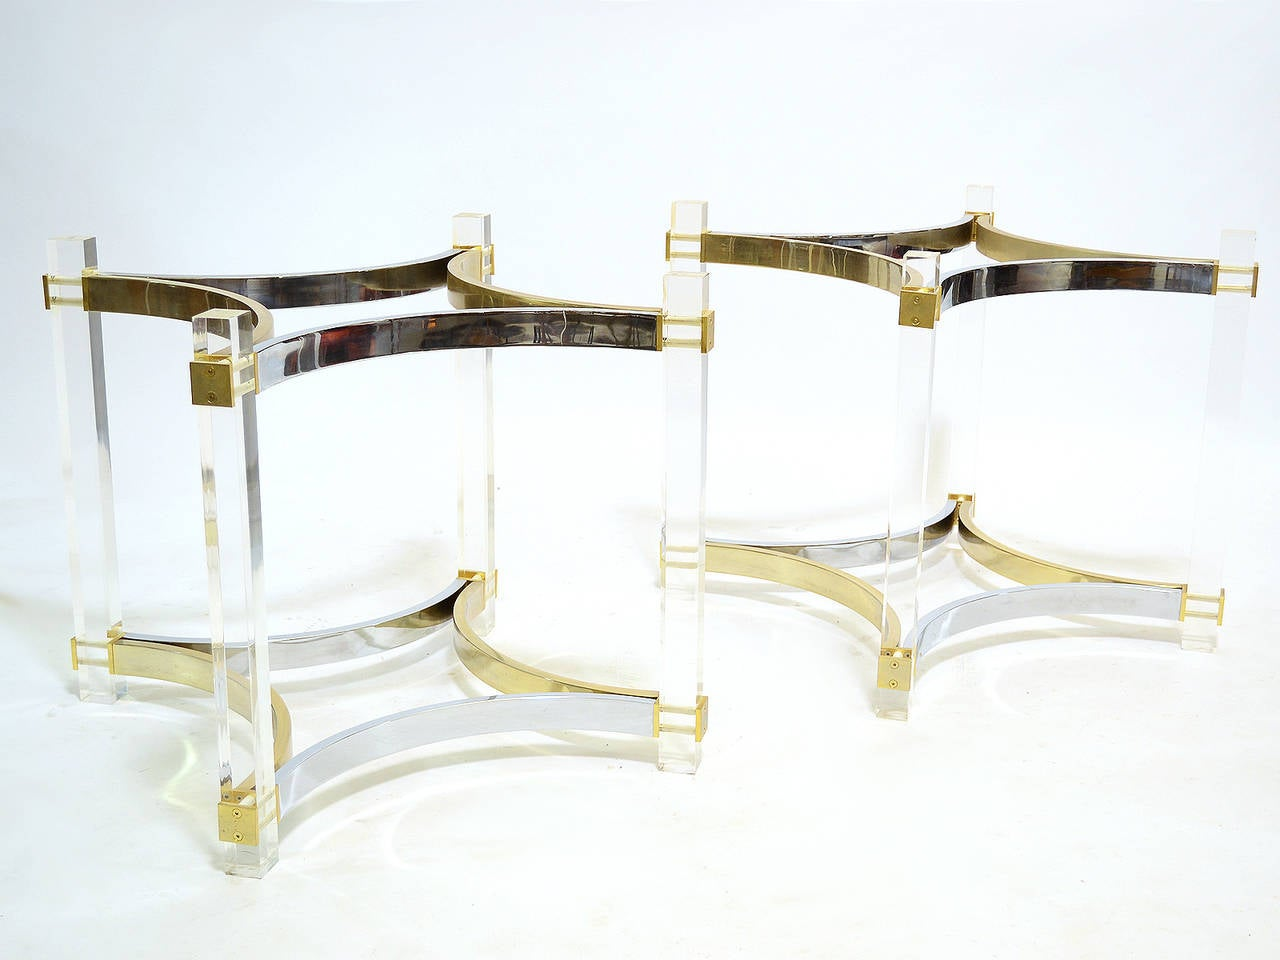 alessandro albrizzi dining table bases in lucite, brass, and